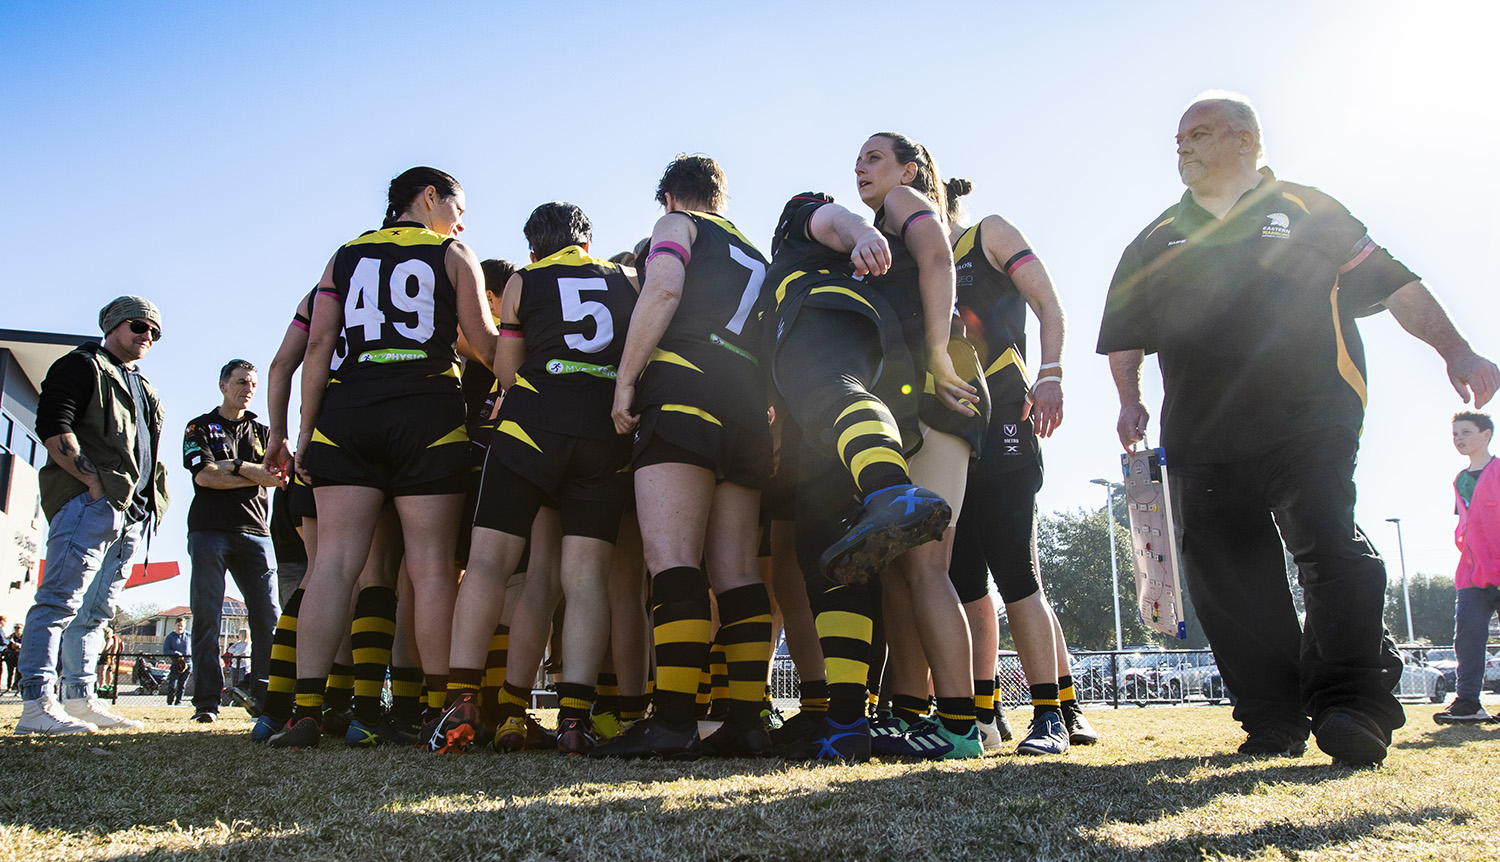 Final huddle at the last game of the season. Throughout the year the women developed strong bonds and Nash says they often resolved issues within the team without his input.